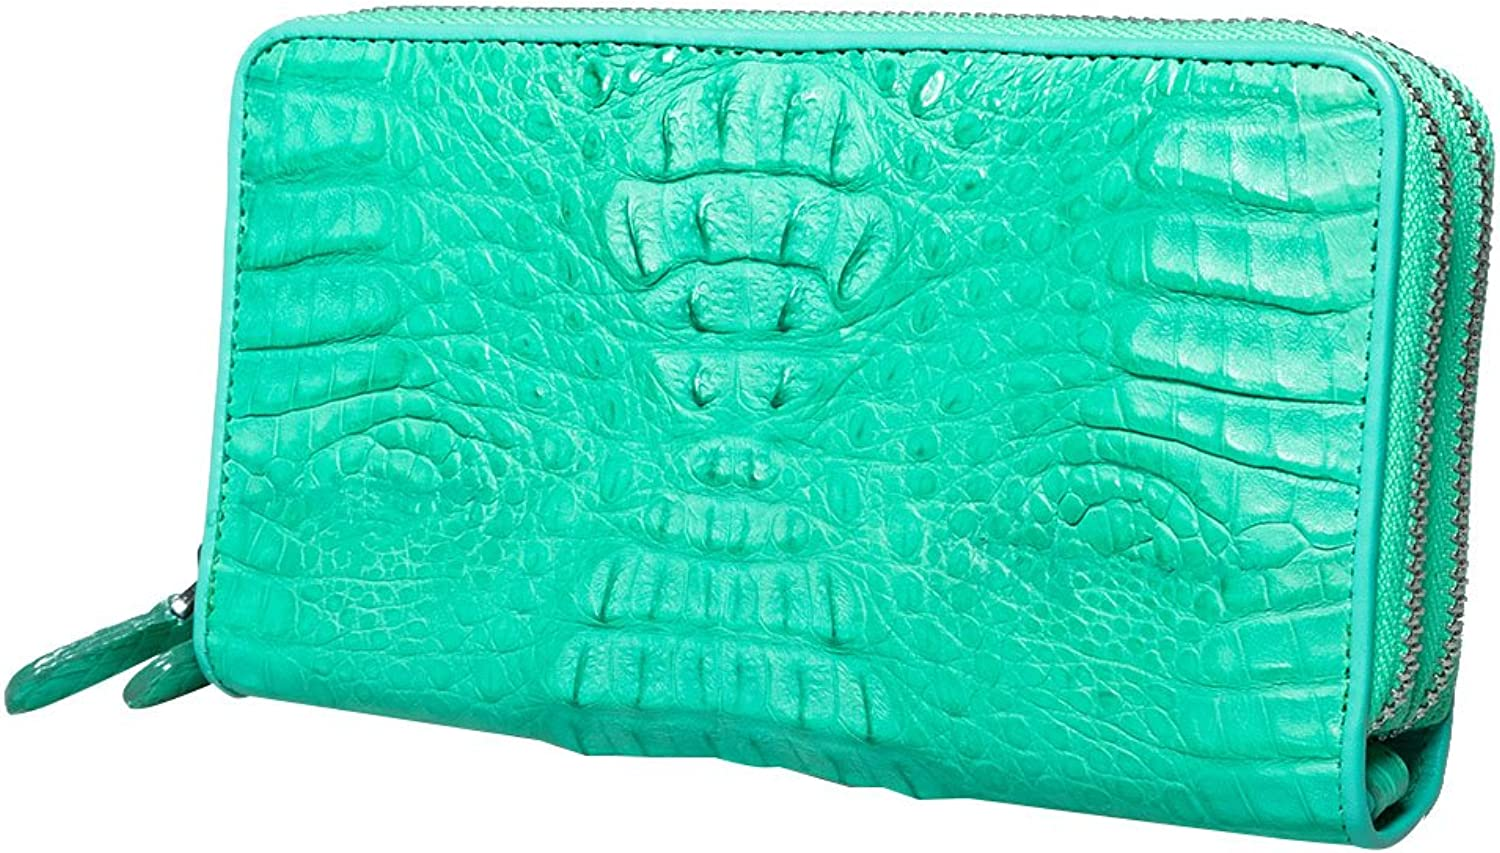 Genuine Crocodile Caiman Leather 2 Inner Zipped Around Coin Wallet Clutch Purse